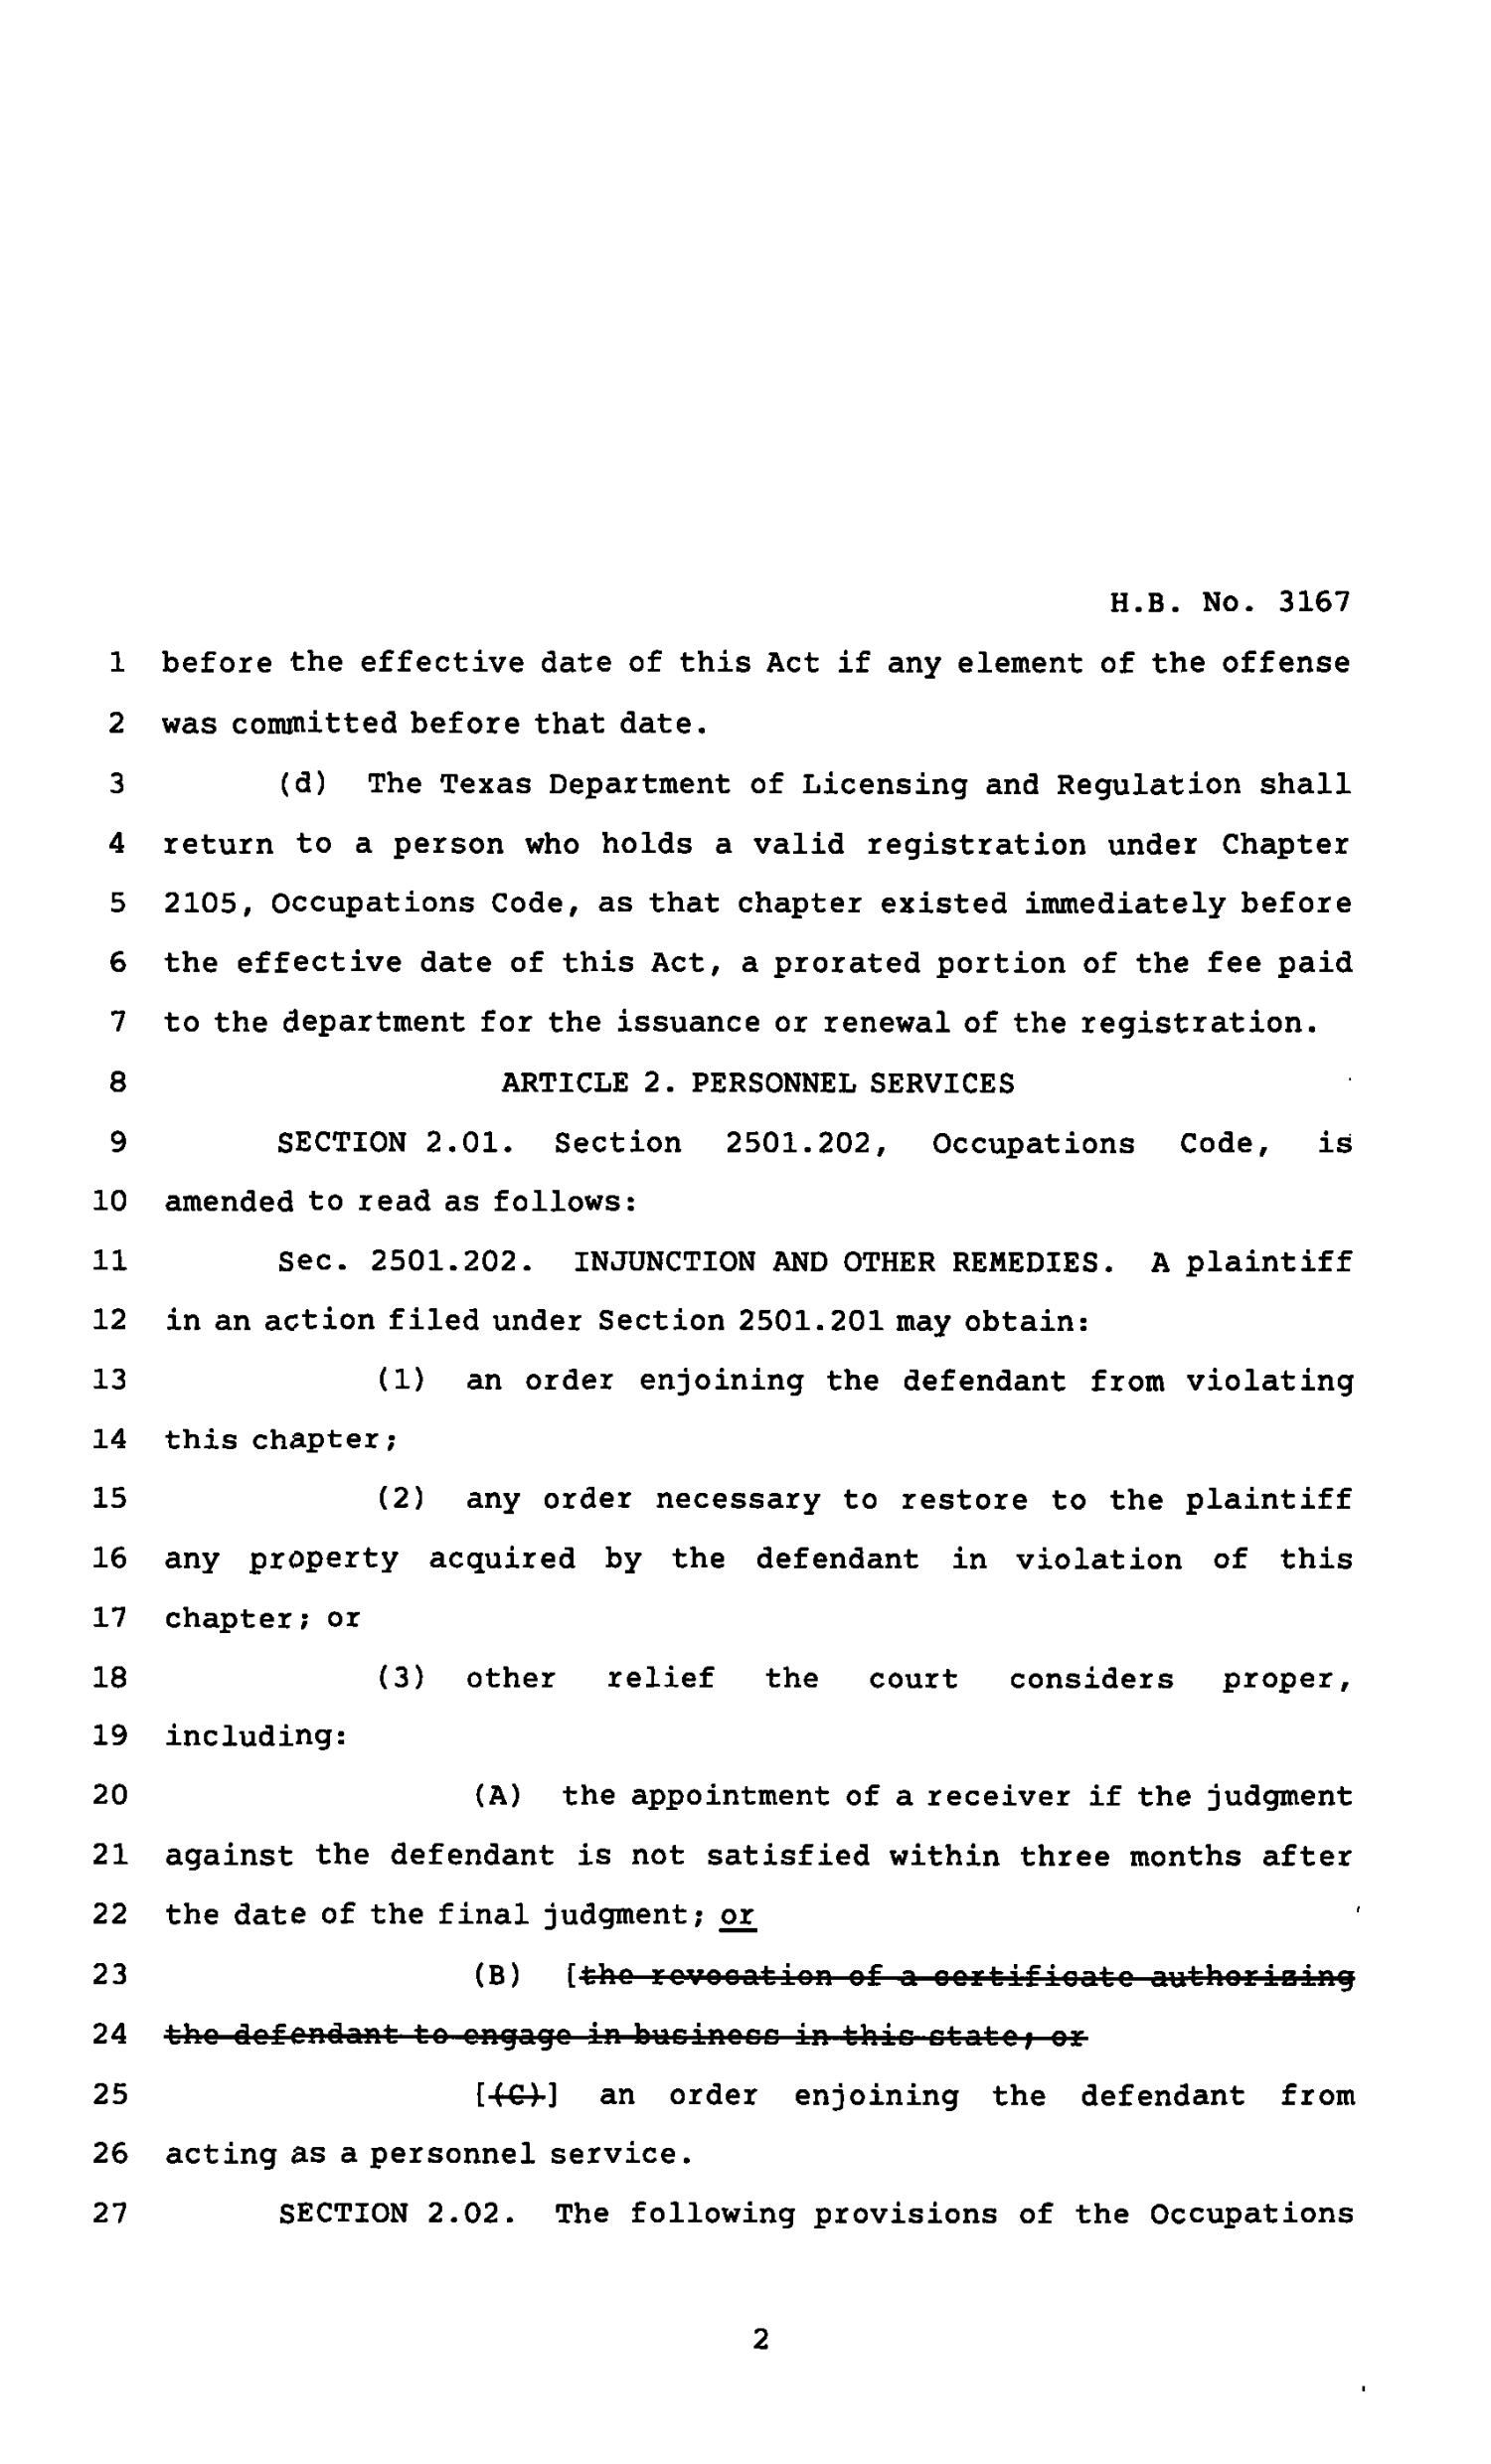 82nd Texas Legislature, Regular Session, House Bill 3167, Chapter 565                                                                                                      [Sequence #]: 2 of 4